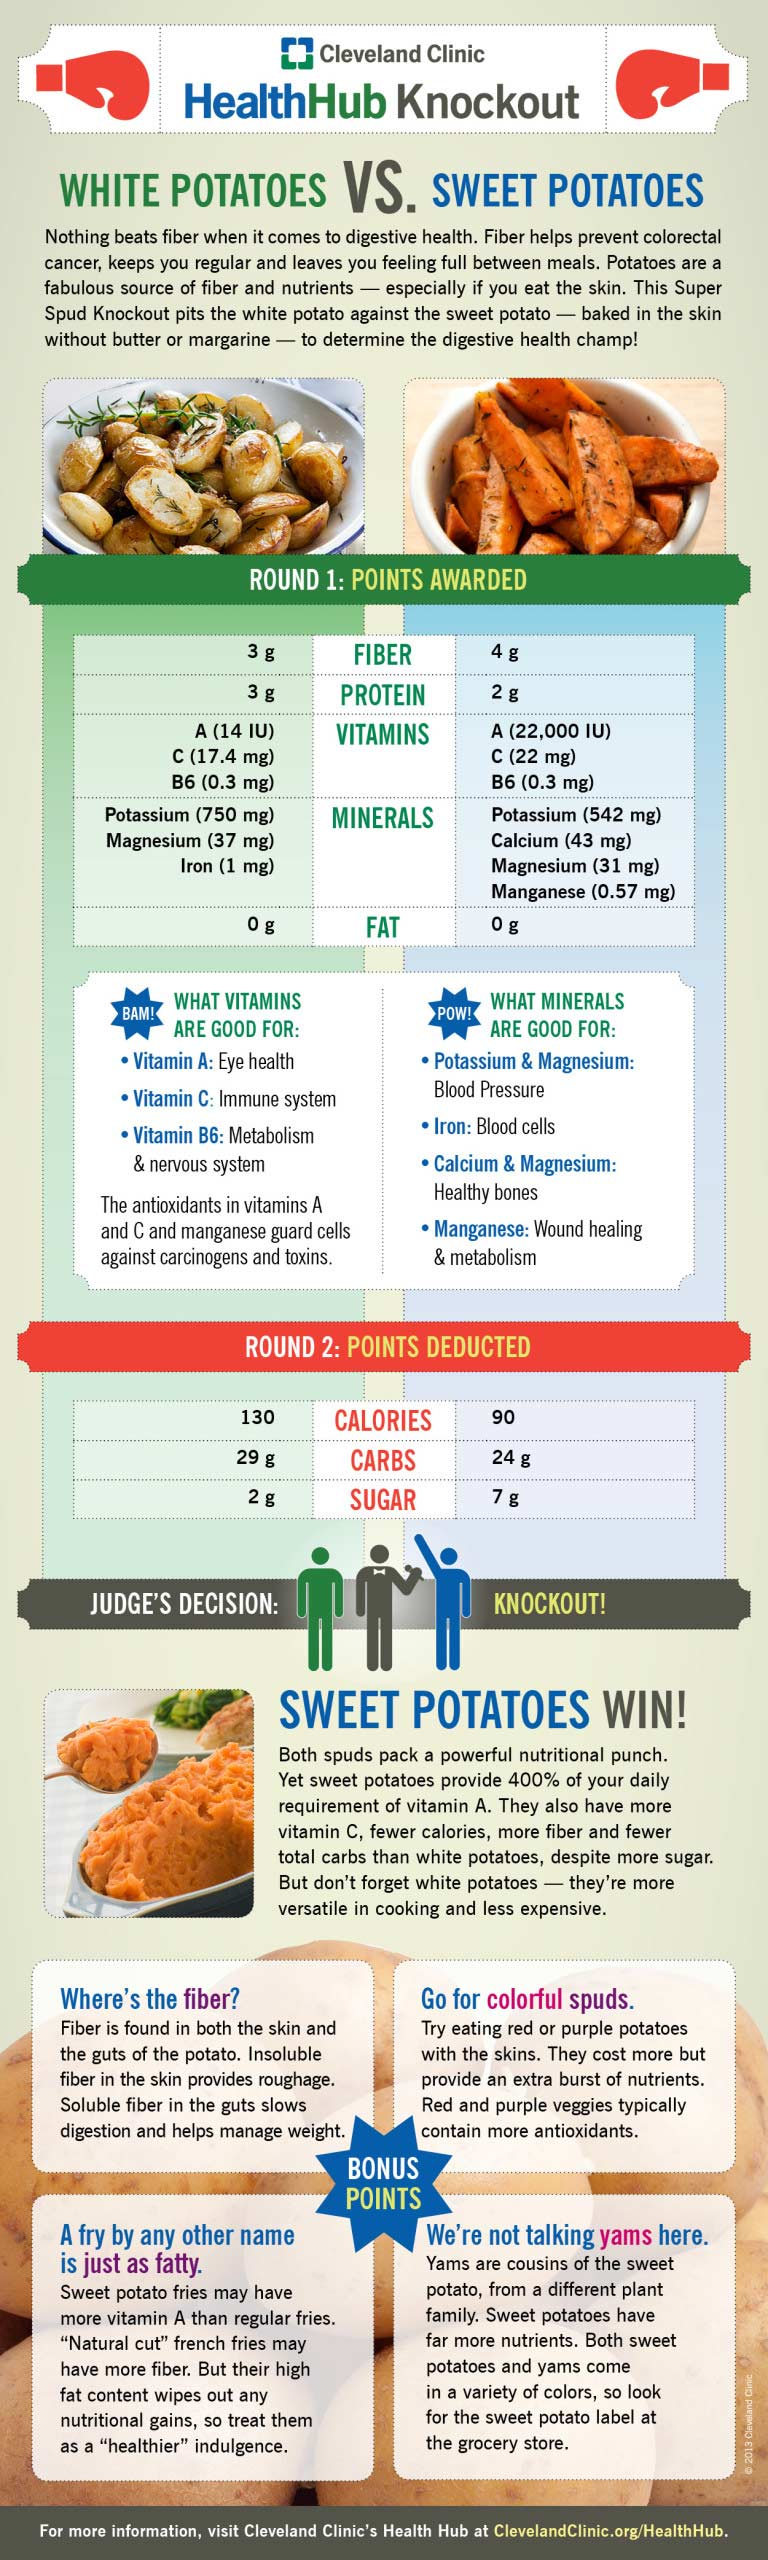 cleveland-clinic-infographic-white-potatoes-vs-sweet-potatoes